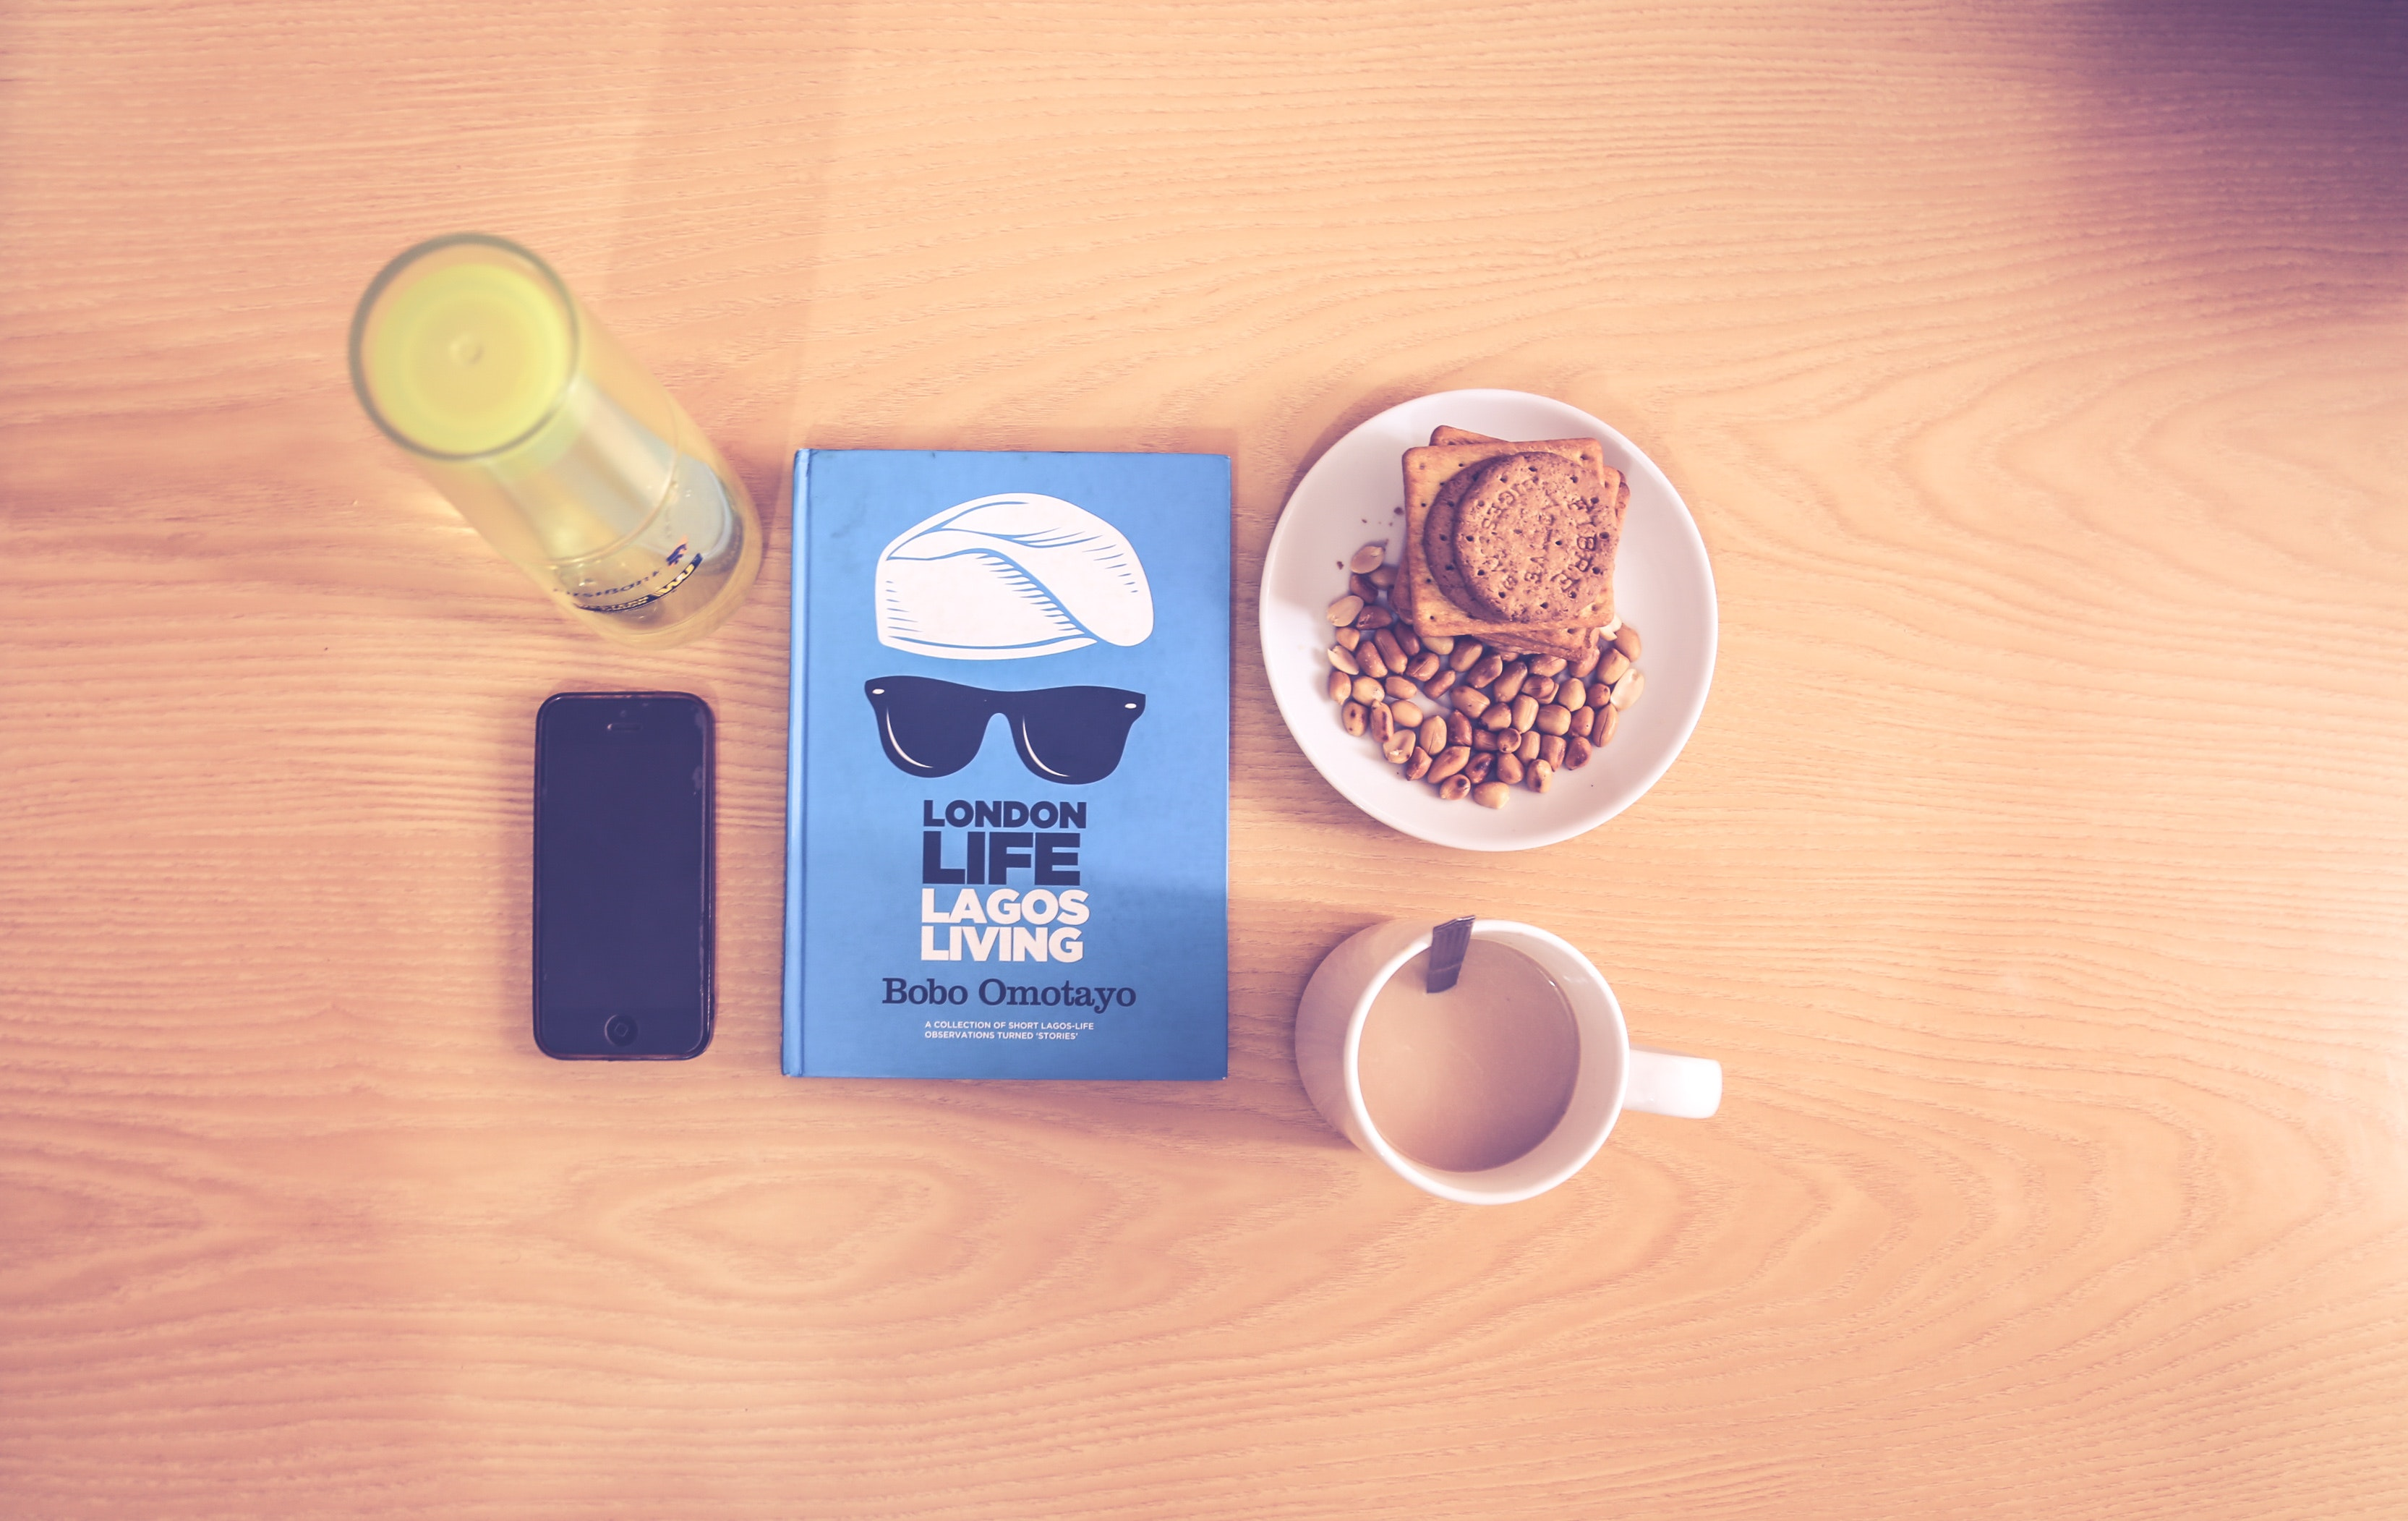 Space gray iphone beside blue labeled book near white ceramic cup with liquid content photo